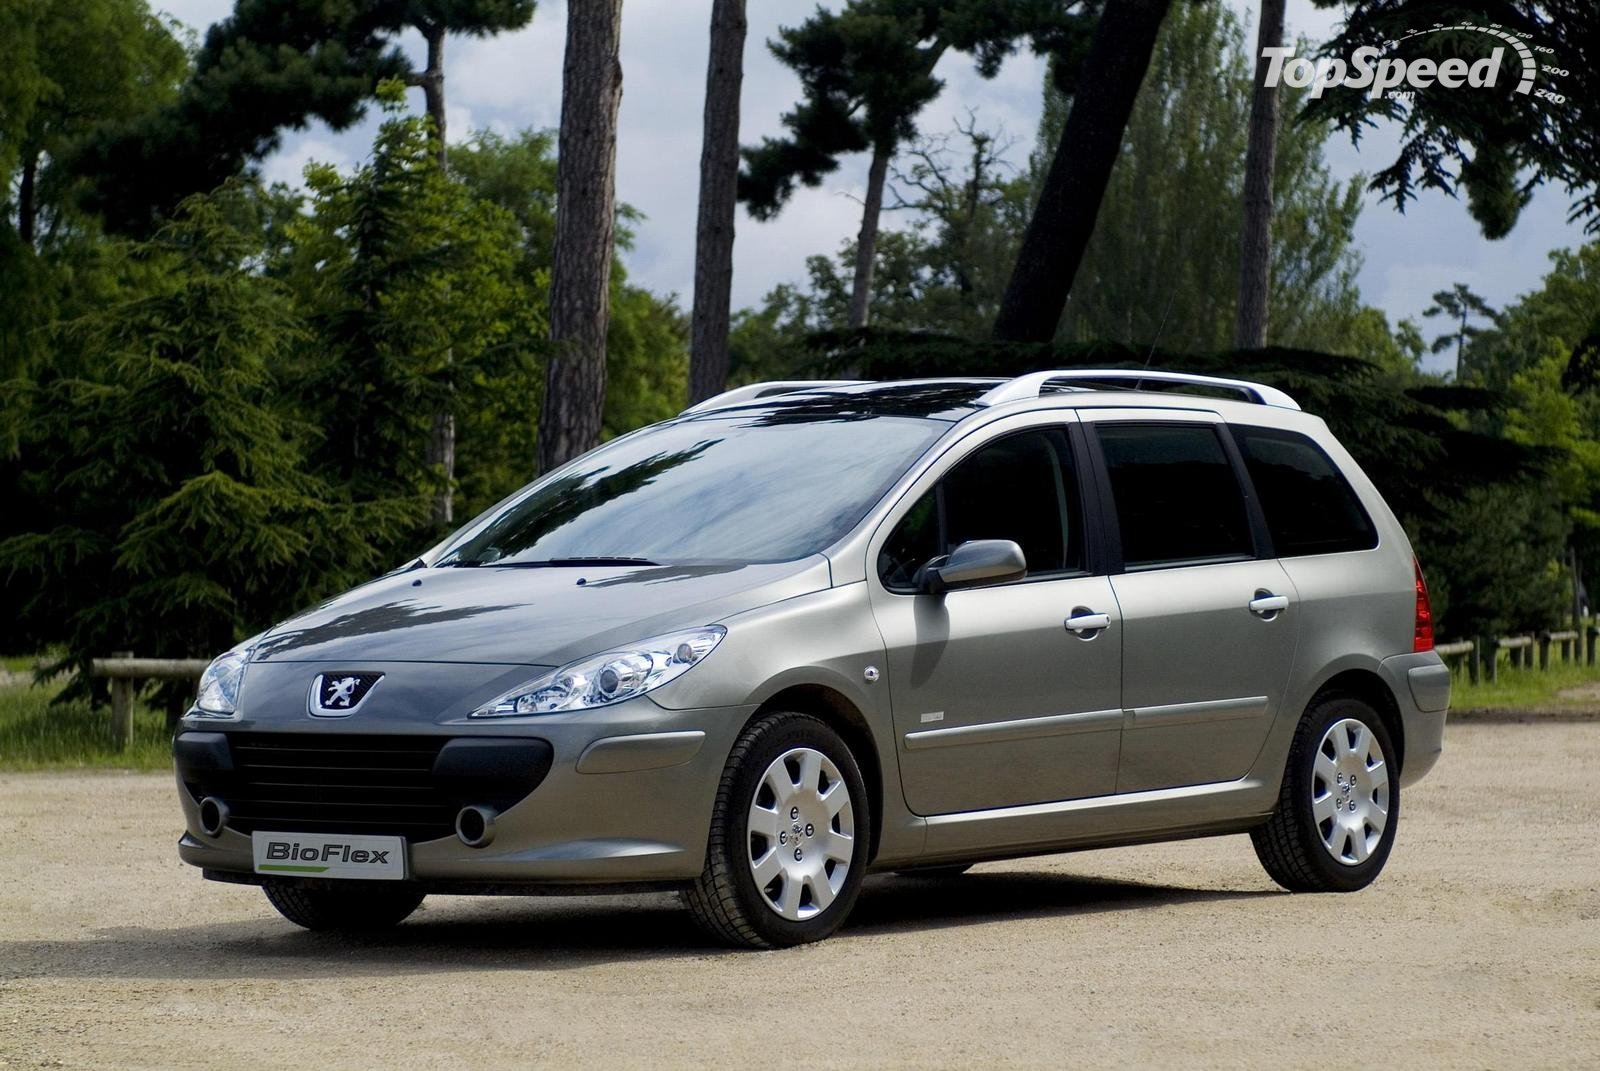 Pictures of peugeot 307 station wagon 2014 #2